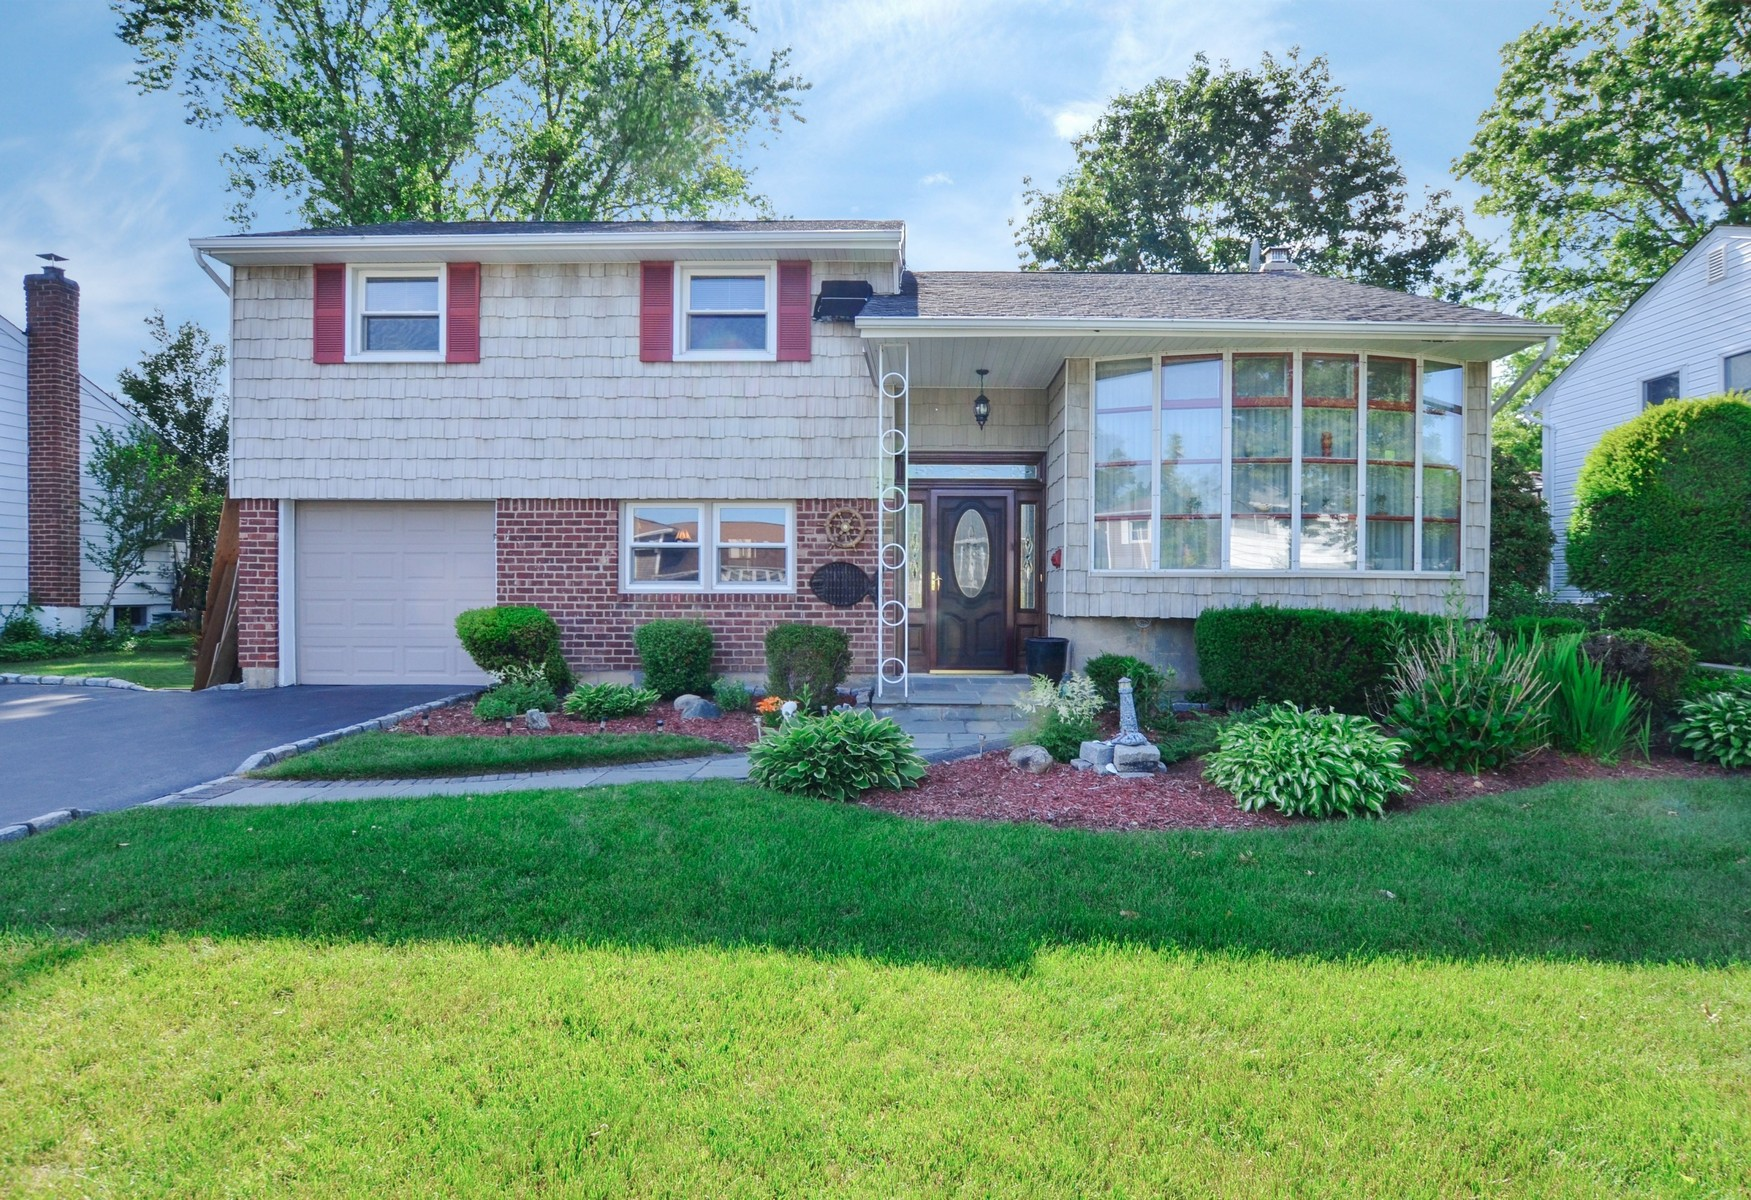 Single Family Home for Sale at Split 27 Roberta Ln Syosset, New York, 11791 United States